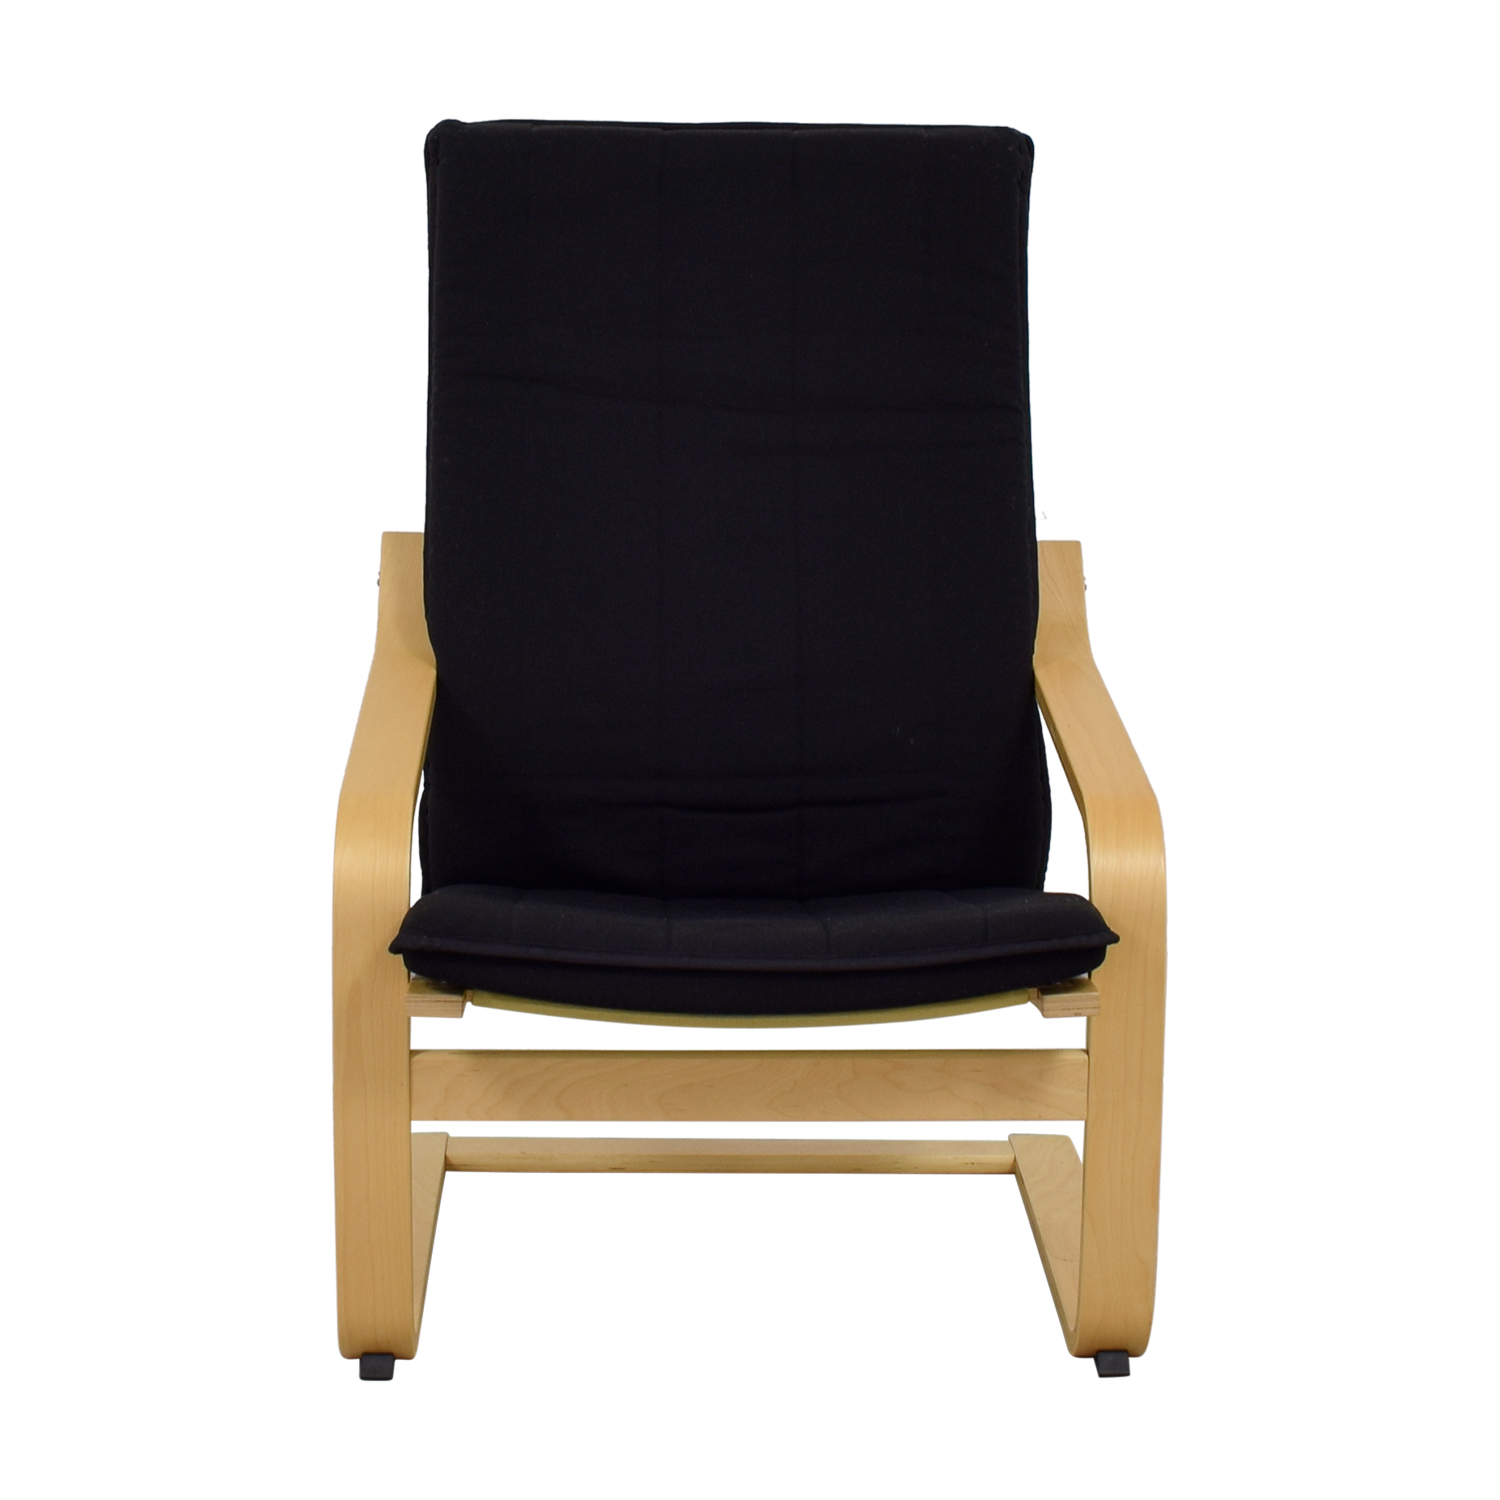 Stupendous 73 Off Ikea Ikea Black Accent Chair Chairs Ibusinesslaw Wood Chair Design Ideas Ibusinesslaworg